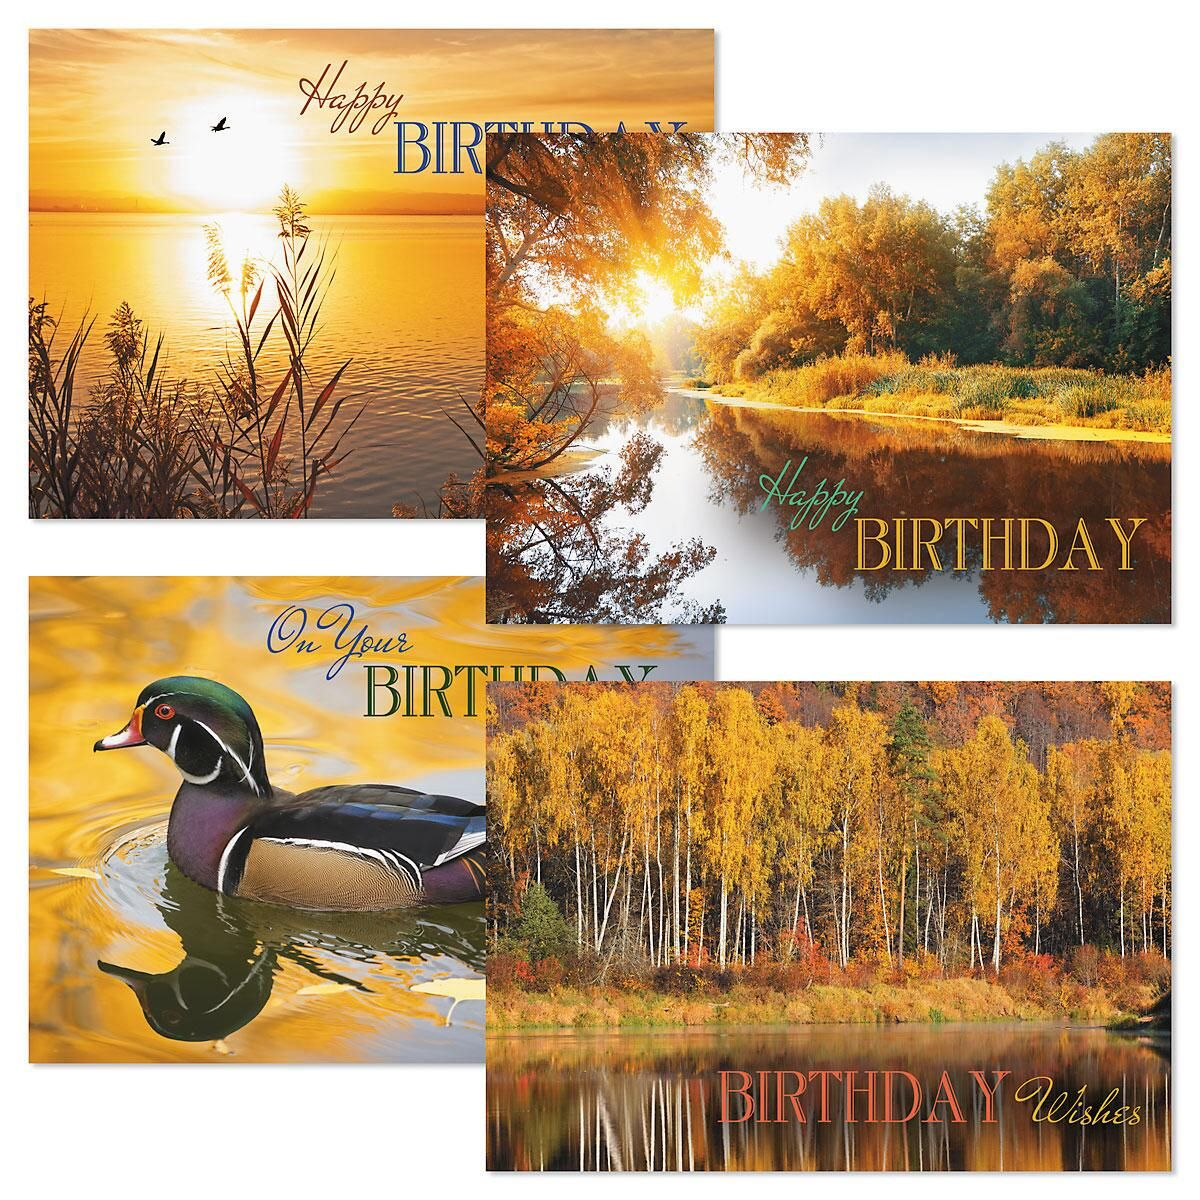 Sunrise Birthday Cards